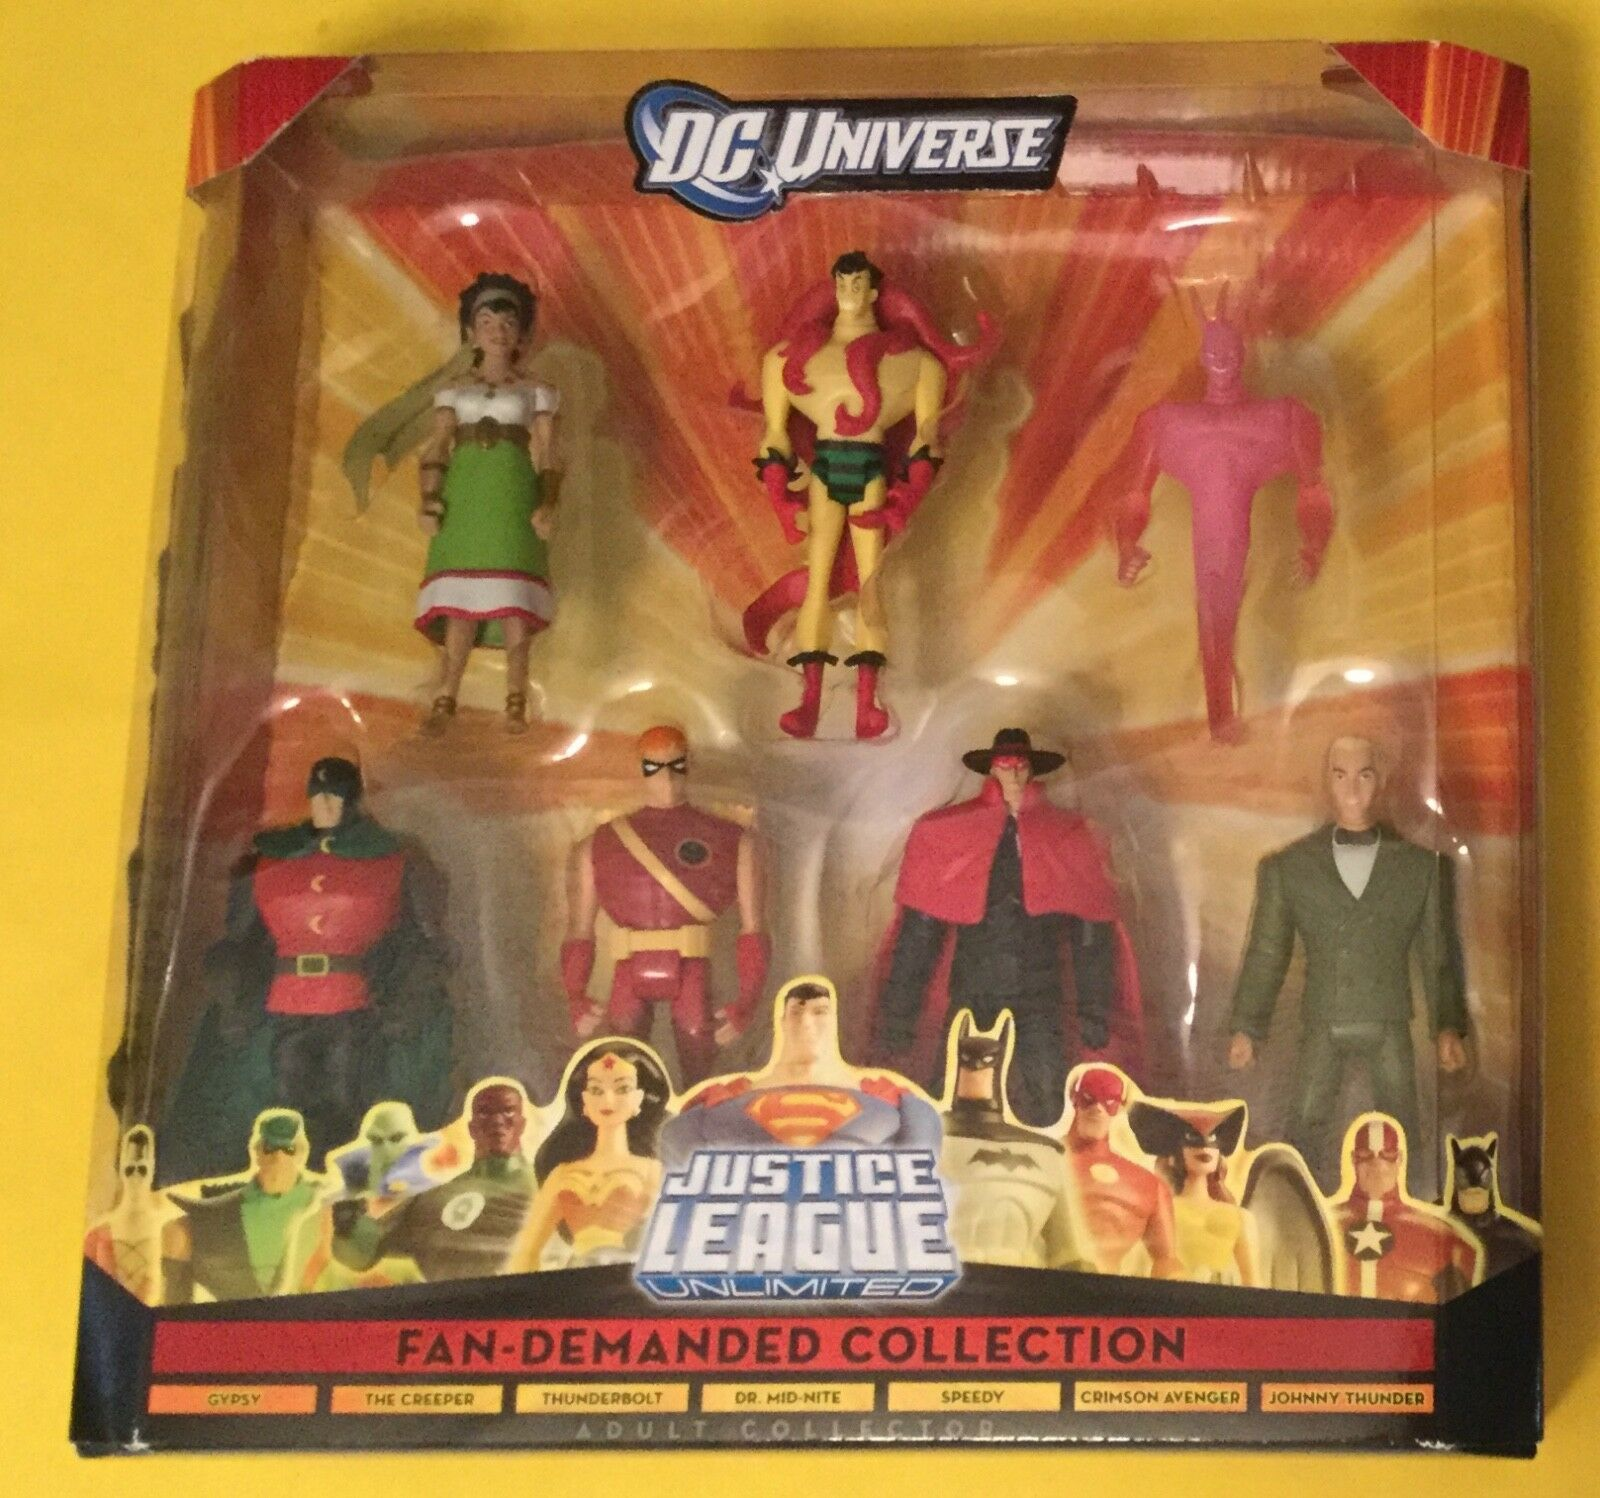 DC UNIVERSE Justice League Unlimited Fan-Demanded Collection Box Set JSA JLU